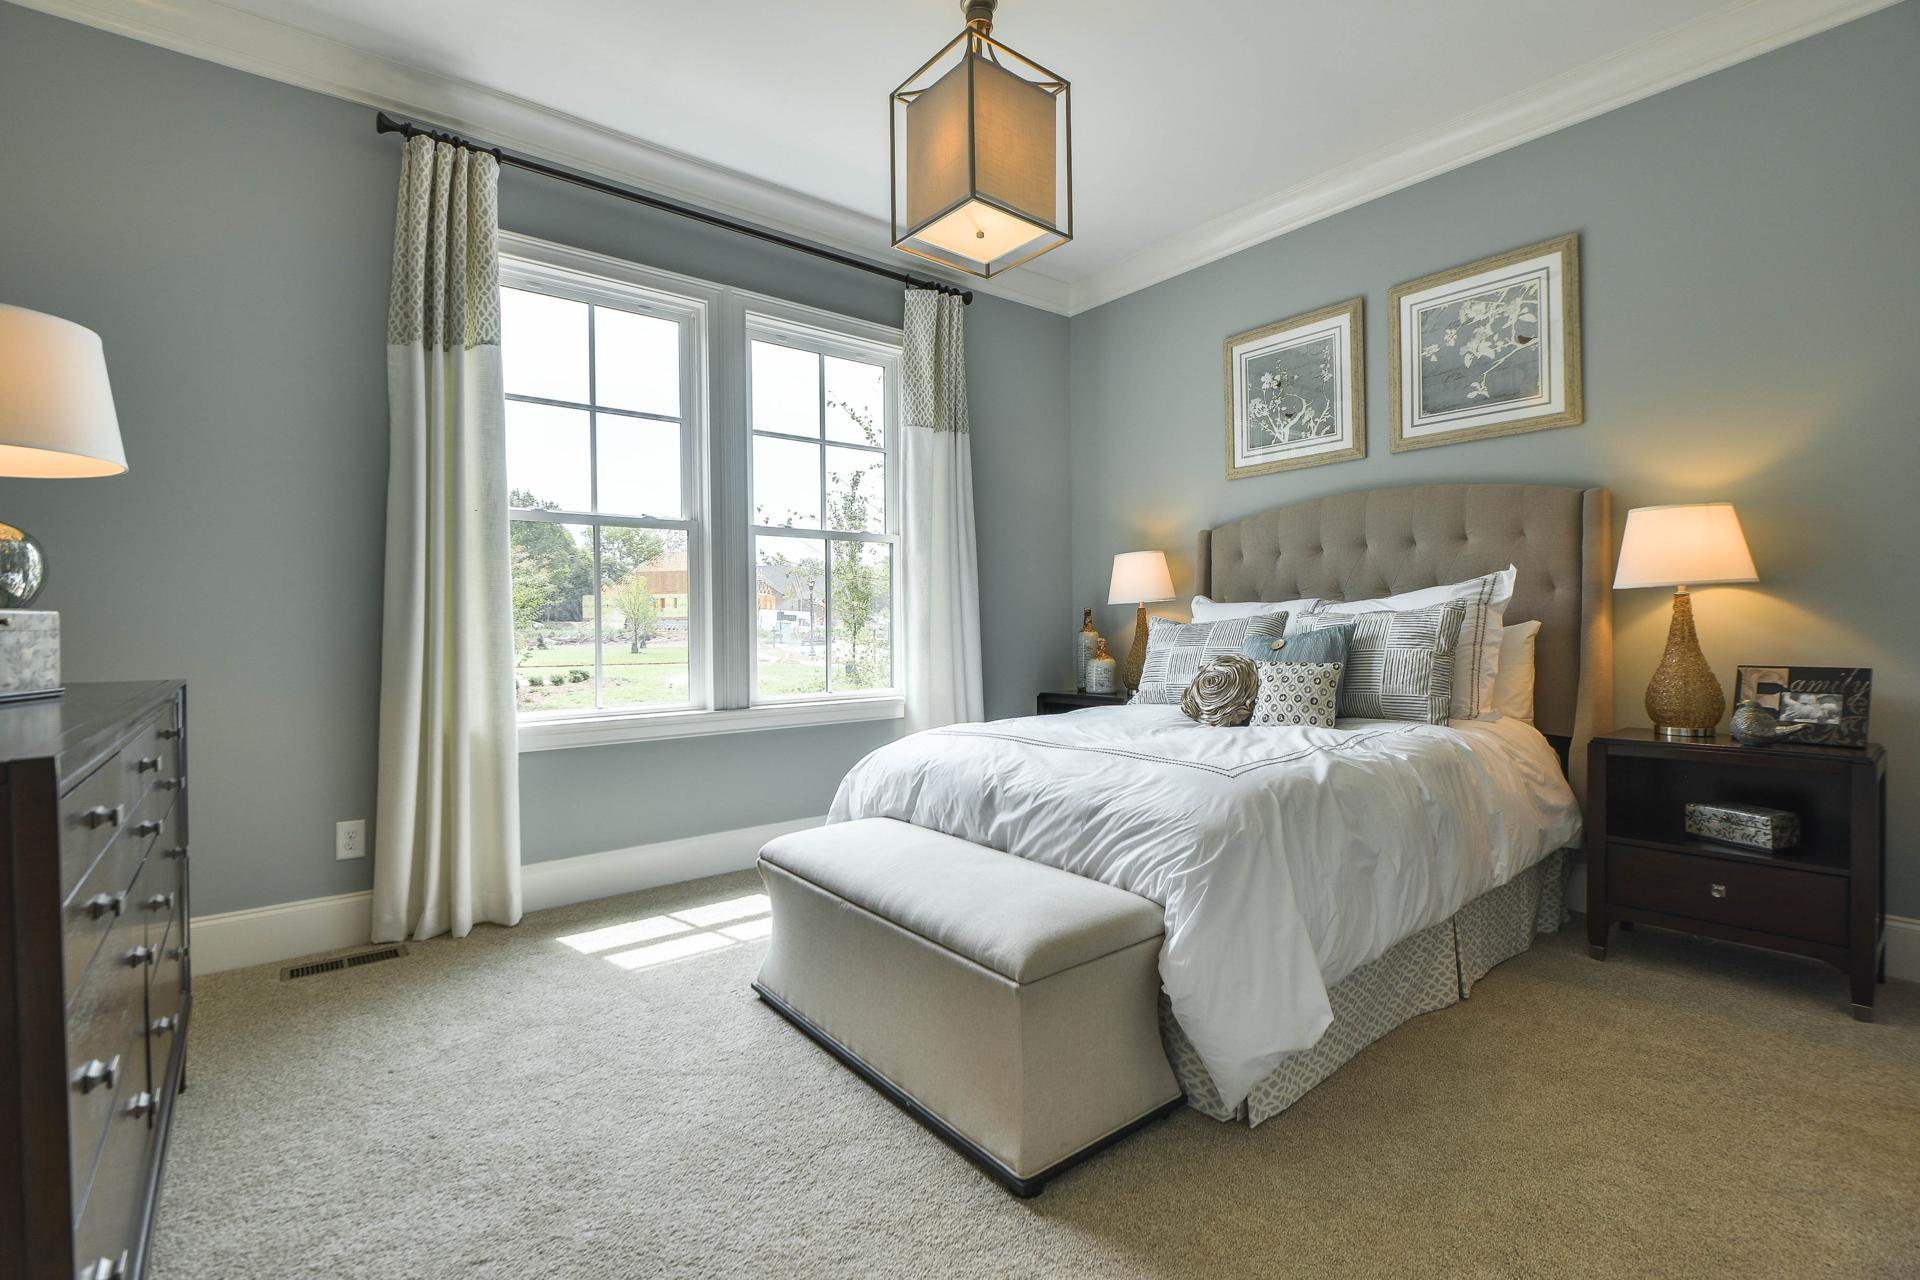 Bedroom featured in the Colinas II By Drees Homes in Nashville, TN